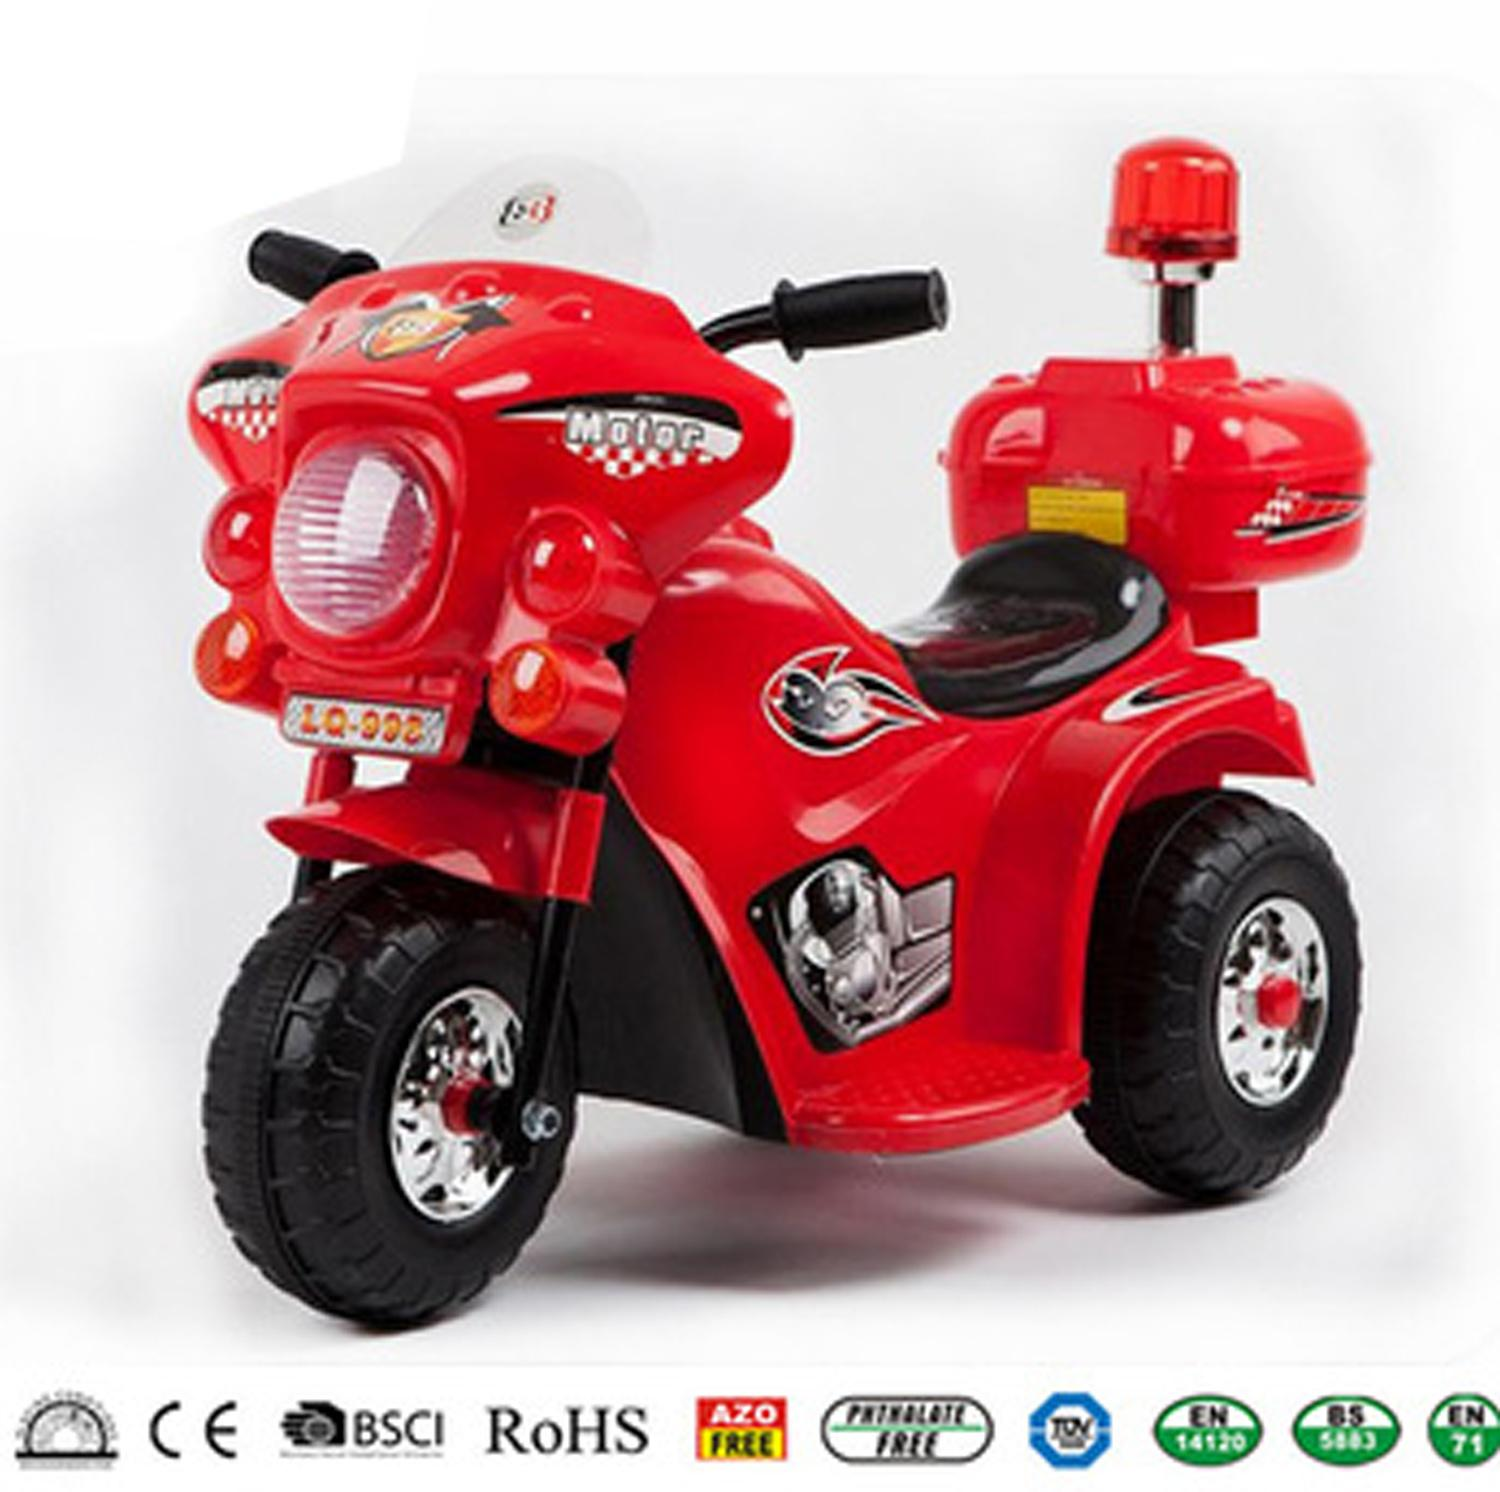 Rechargeable Motor Bike Kids Ride-On Toys Police Motorcycle By Korean Roewe Store.